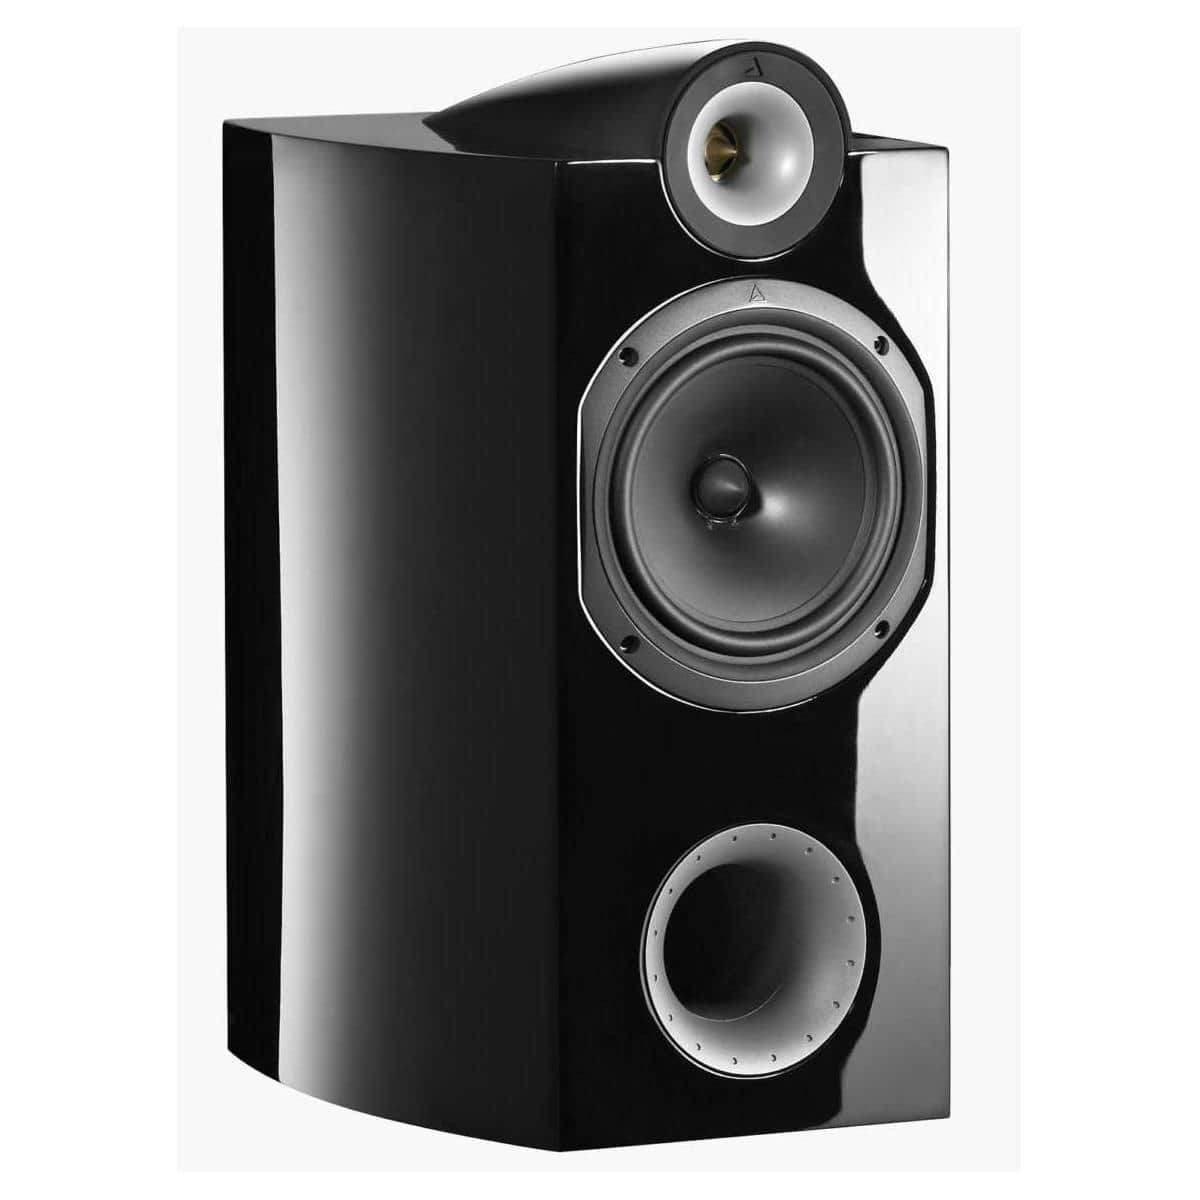 Triangle Genese Trio Bookshelf Speaker (Single) $499 + free s/h at Adorama